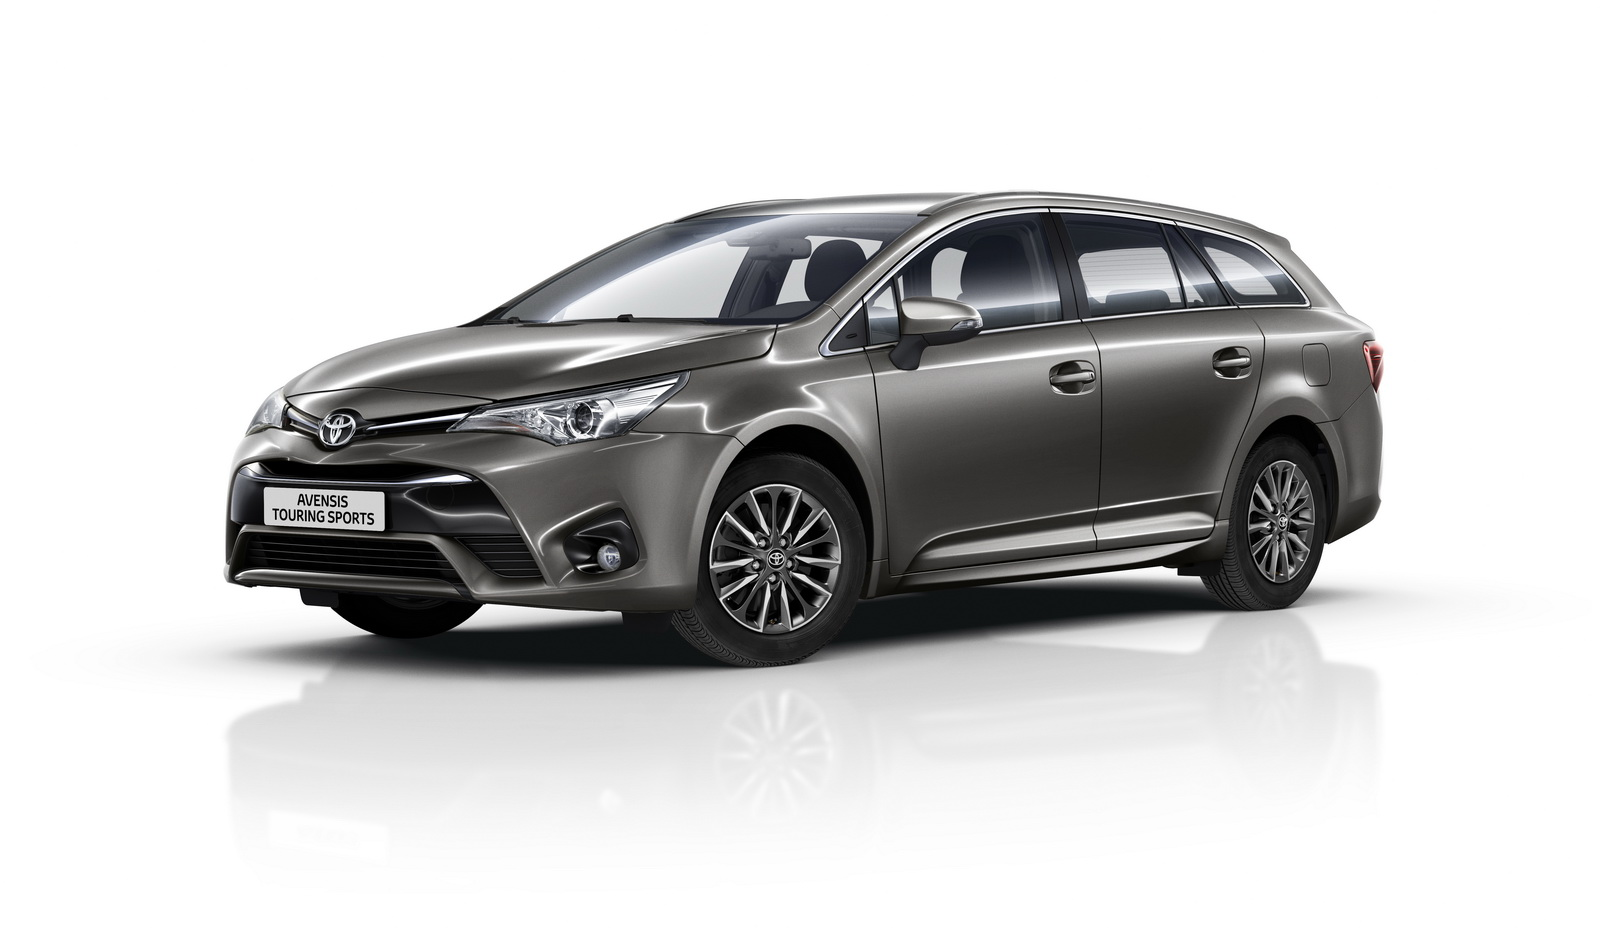 2016 toyota avensis auris hybrid gain minor updates carscoops. Black Bedroom Furniture Sets. Home Design Ideas